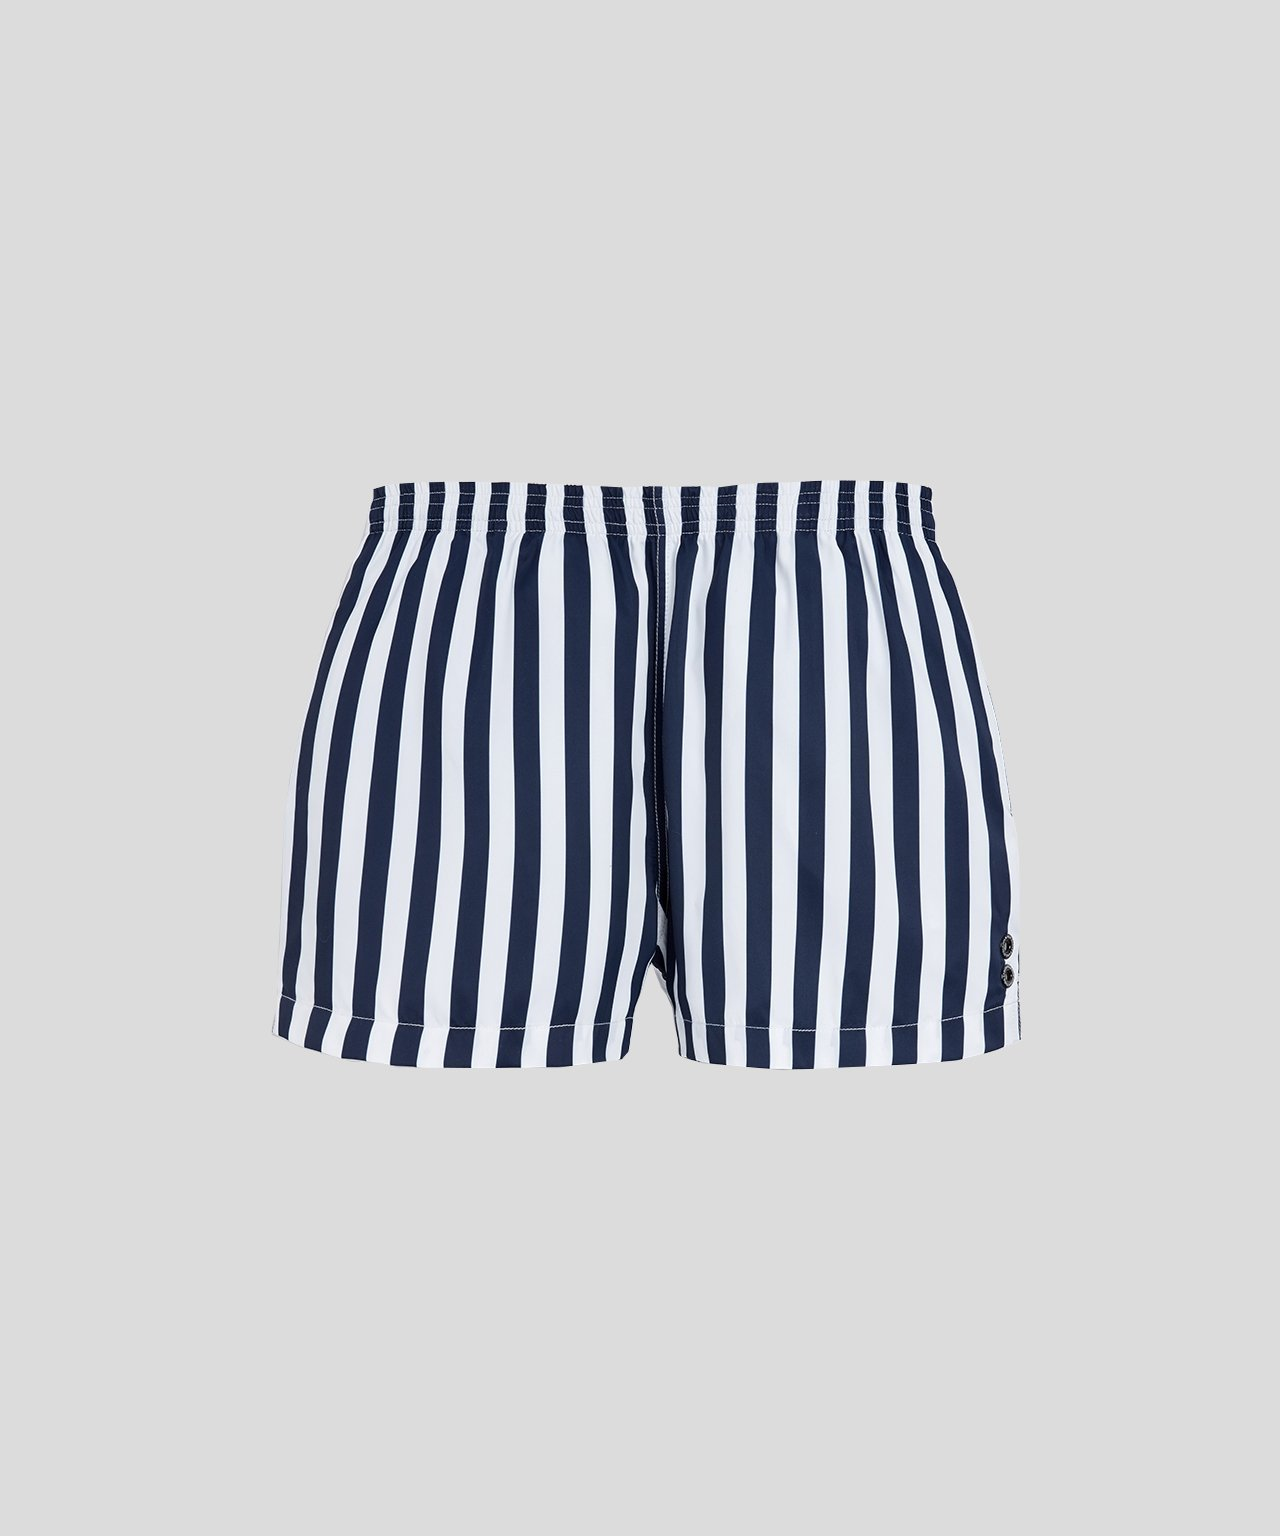 Ron-Dorff-Swim-Shorts-Vertical-Stripes-Navy/White